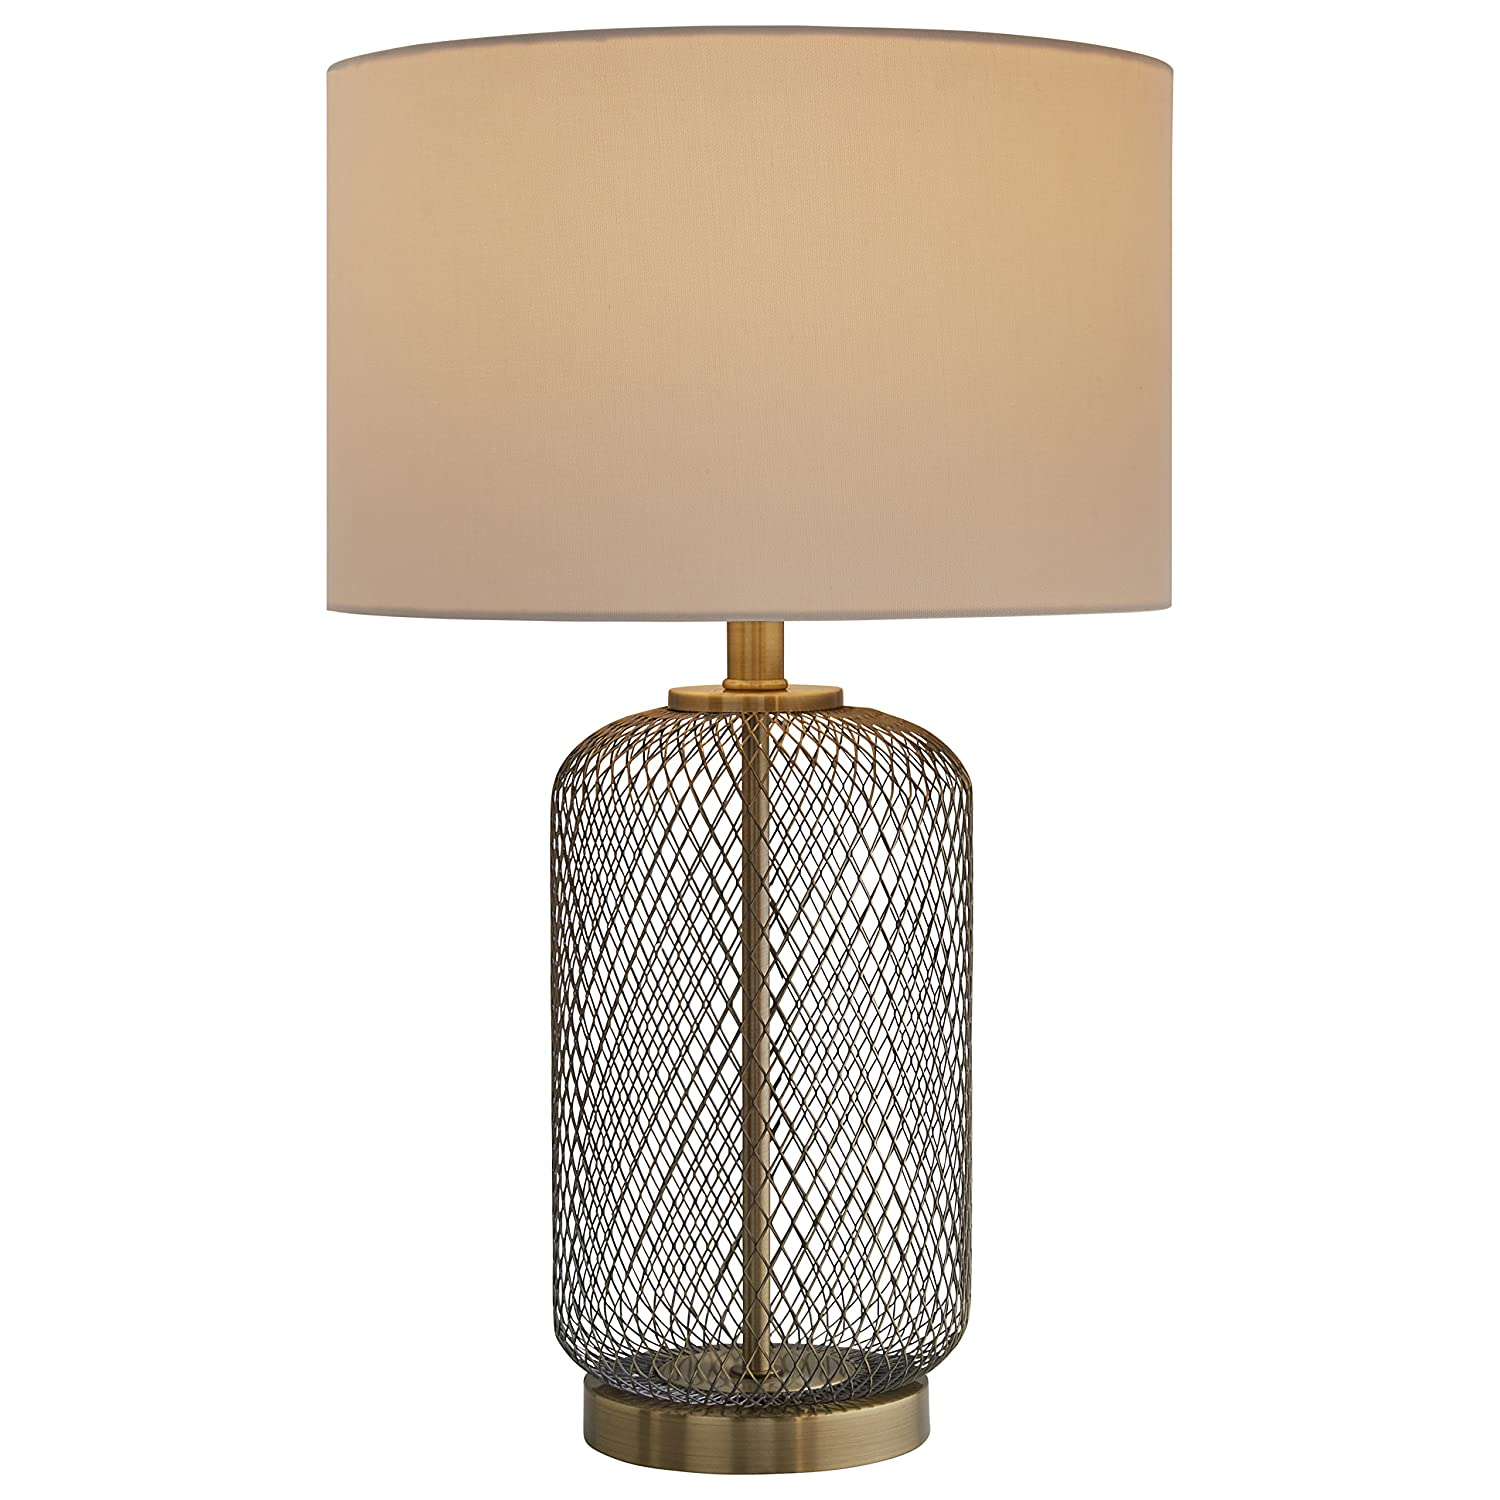 "Stone & Beam Modern Mesh Table Lamp 23""H Antique Brass with Linen Shade"